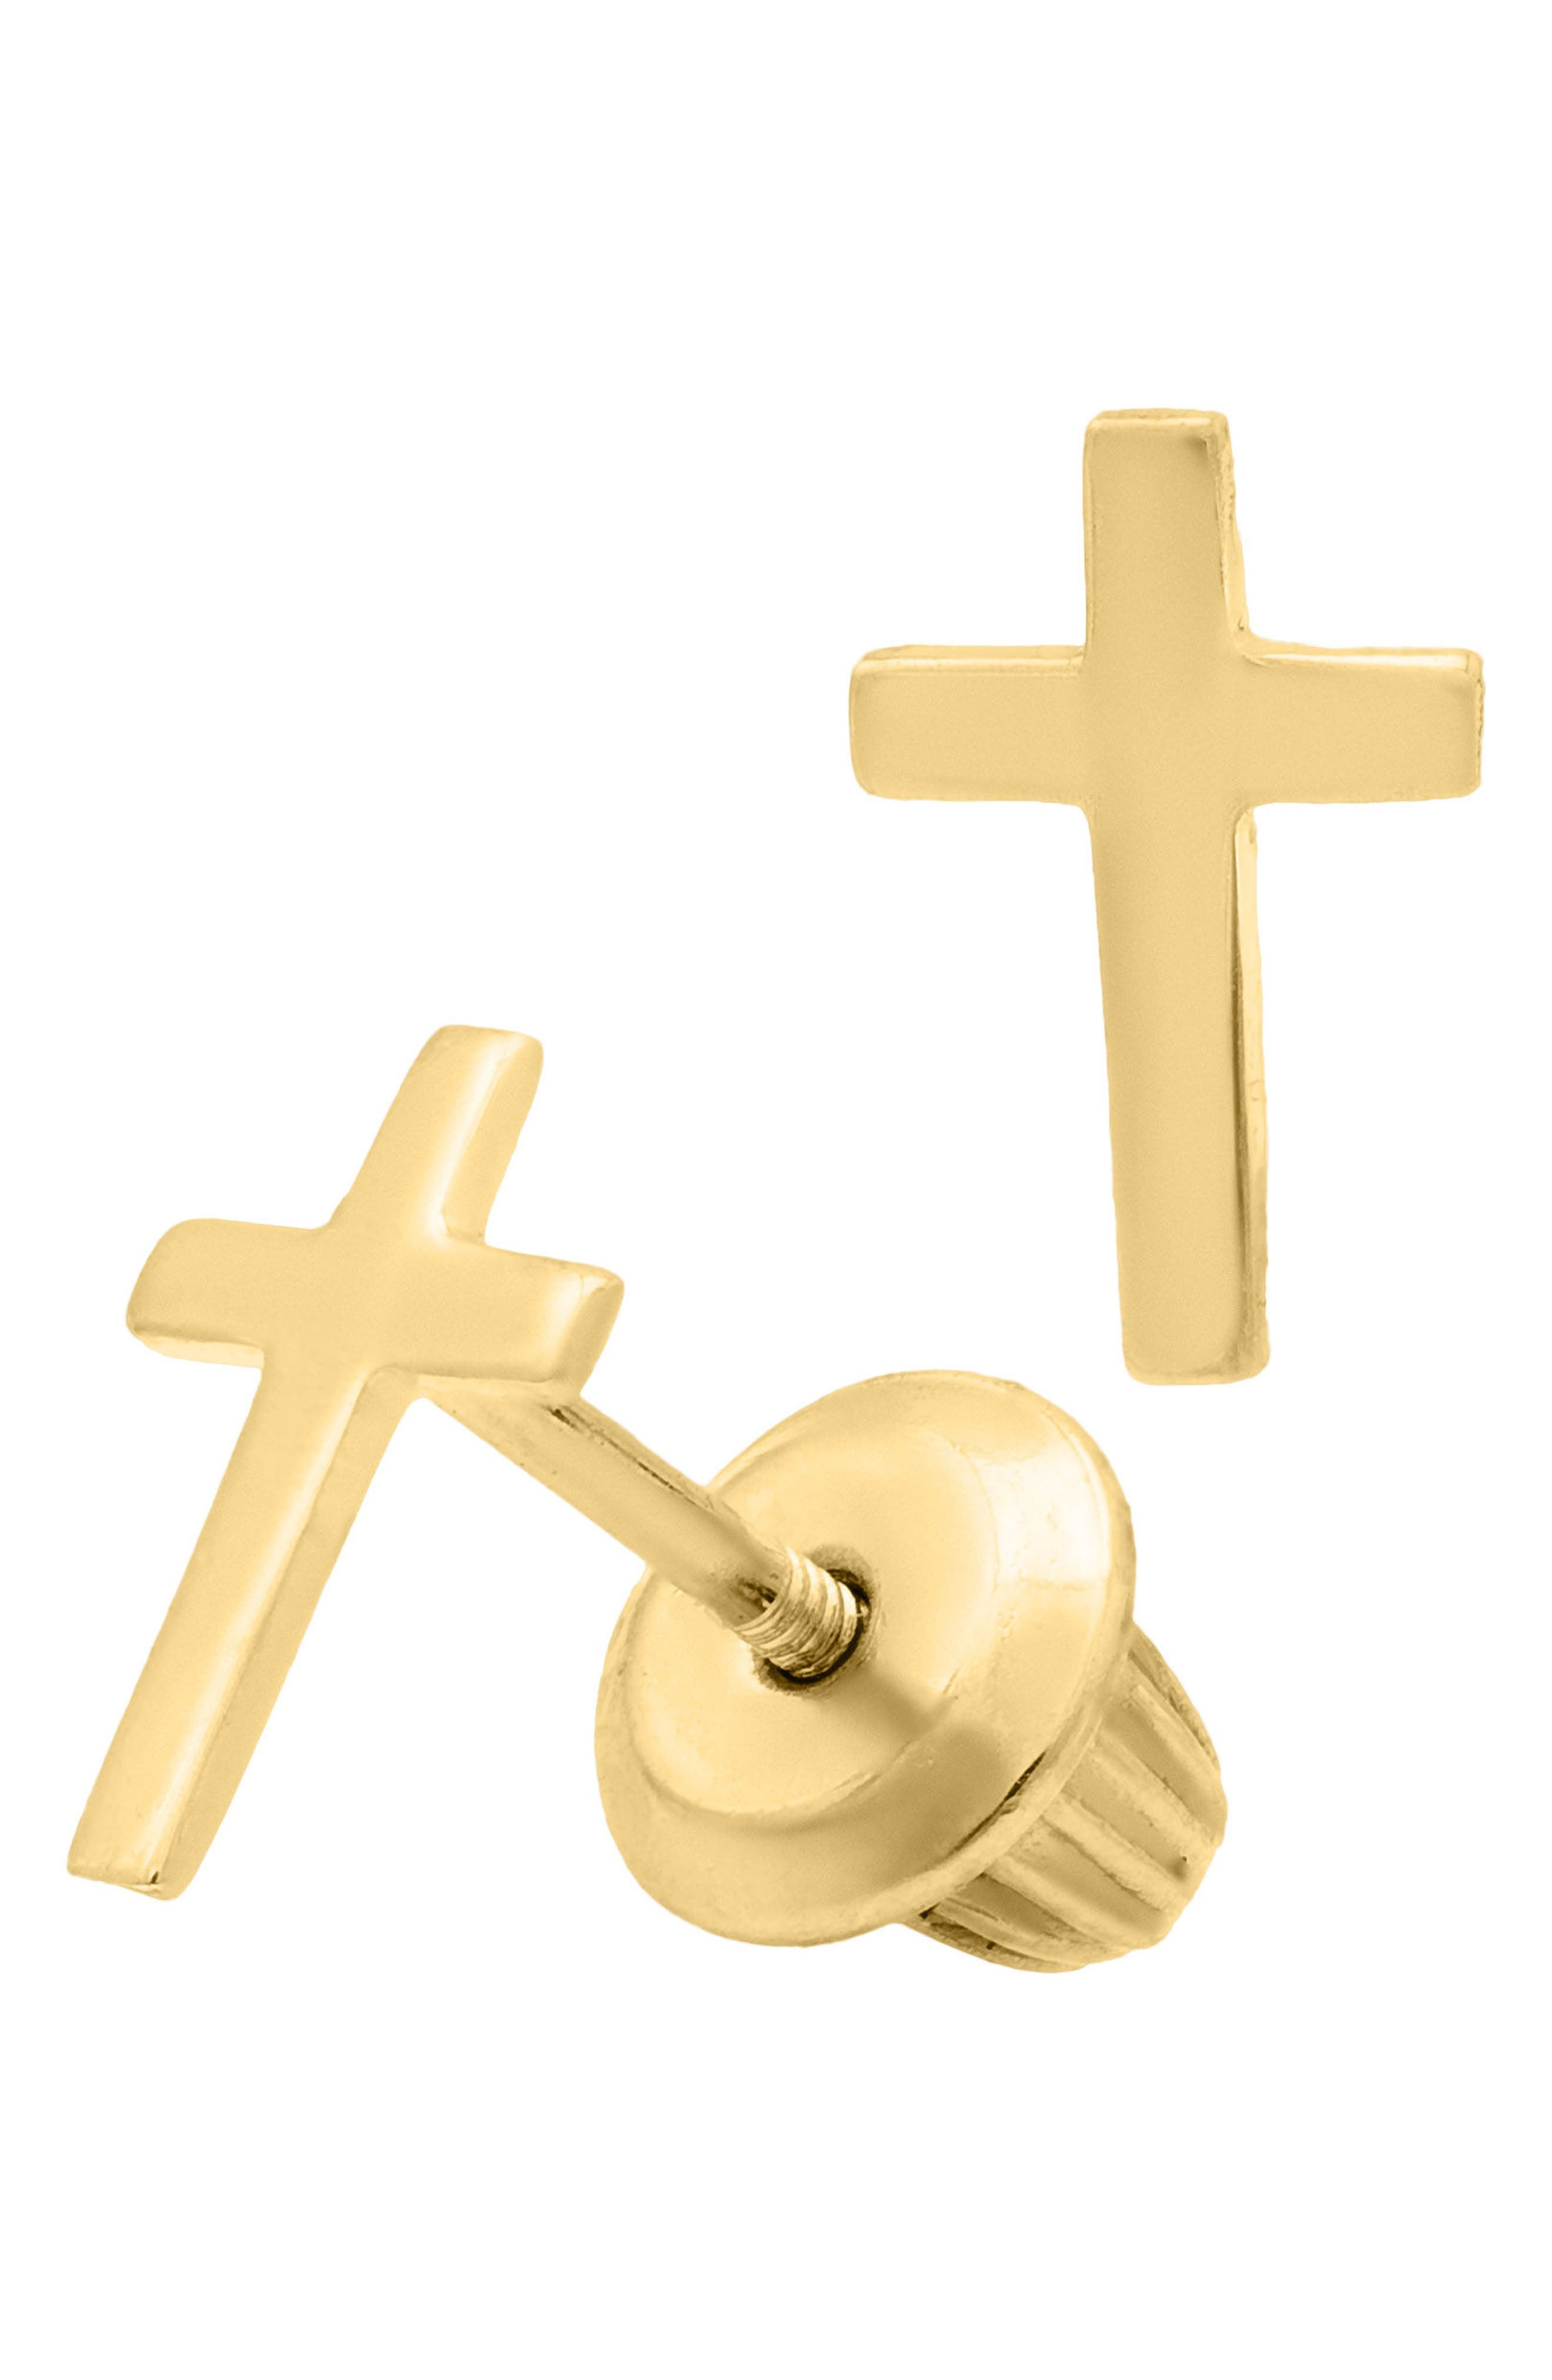 14k Gold Cross Stud Earrings,                         Main,                         color, Gold